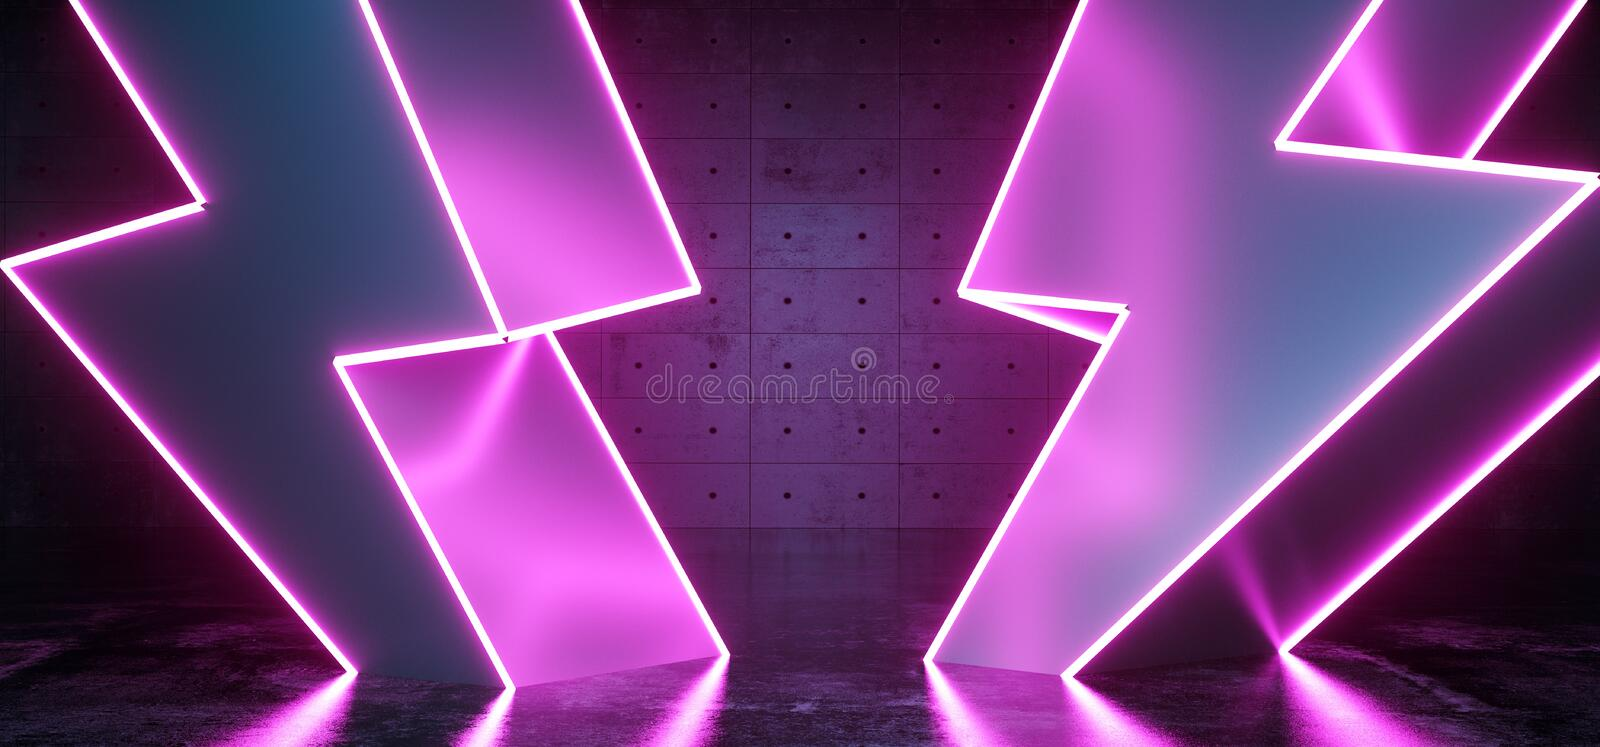 High Voltage Electric Neon Glowing Thunder Bolt Shapes Sci Fi Futuristic Modern Dark Background Grunge Concrete Room Empty Space vector illustration